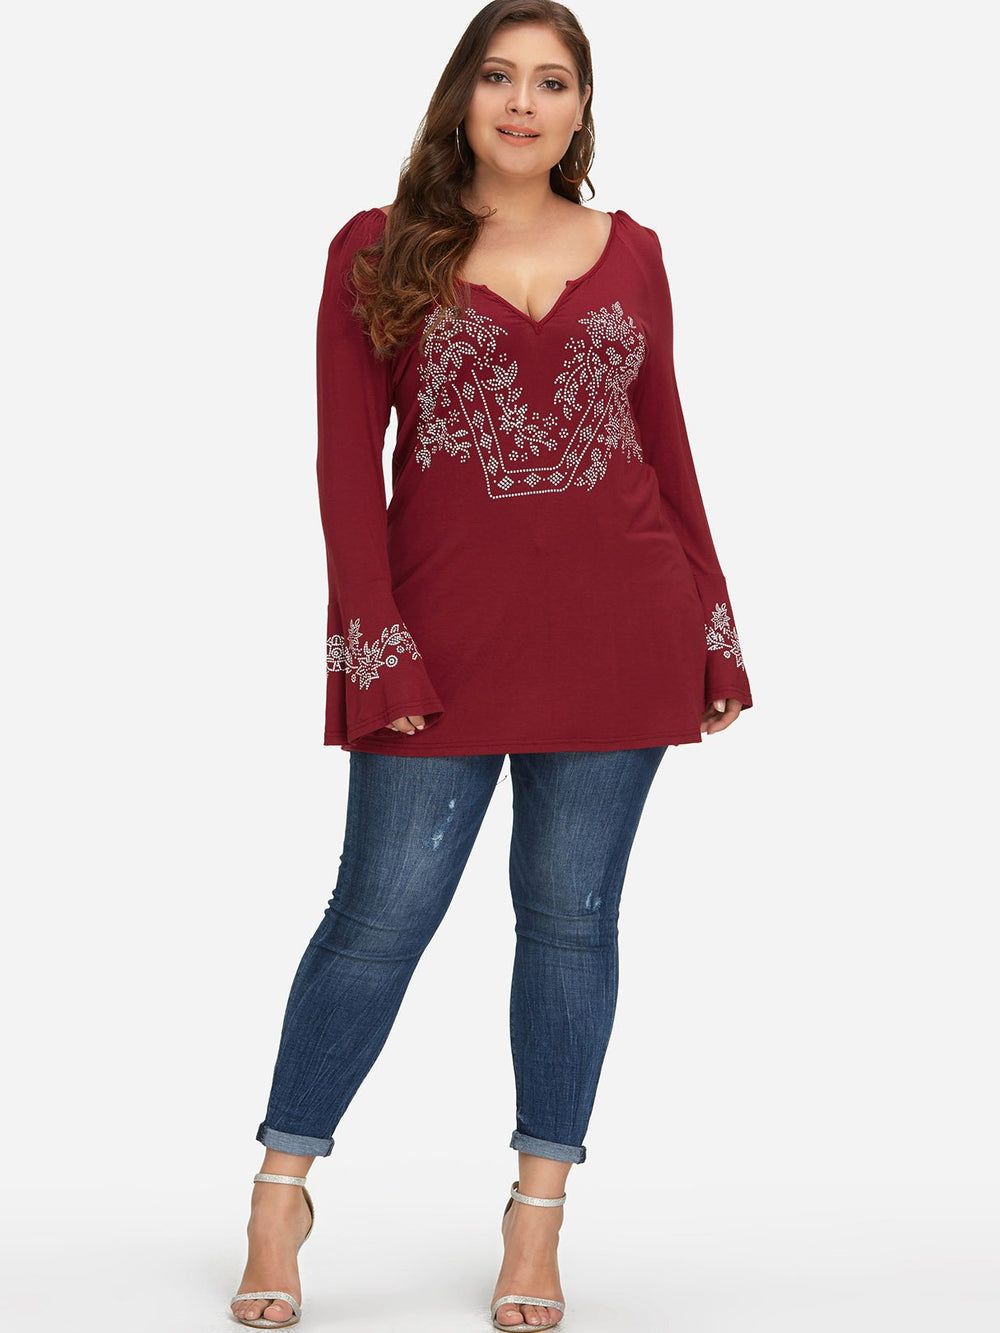 Plus Size Womens Tops Cheap